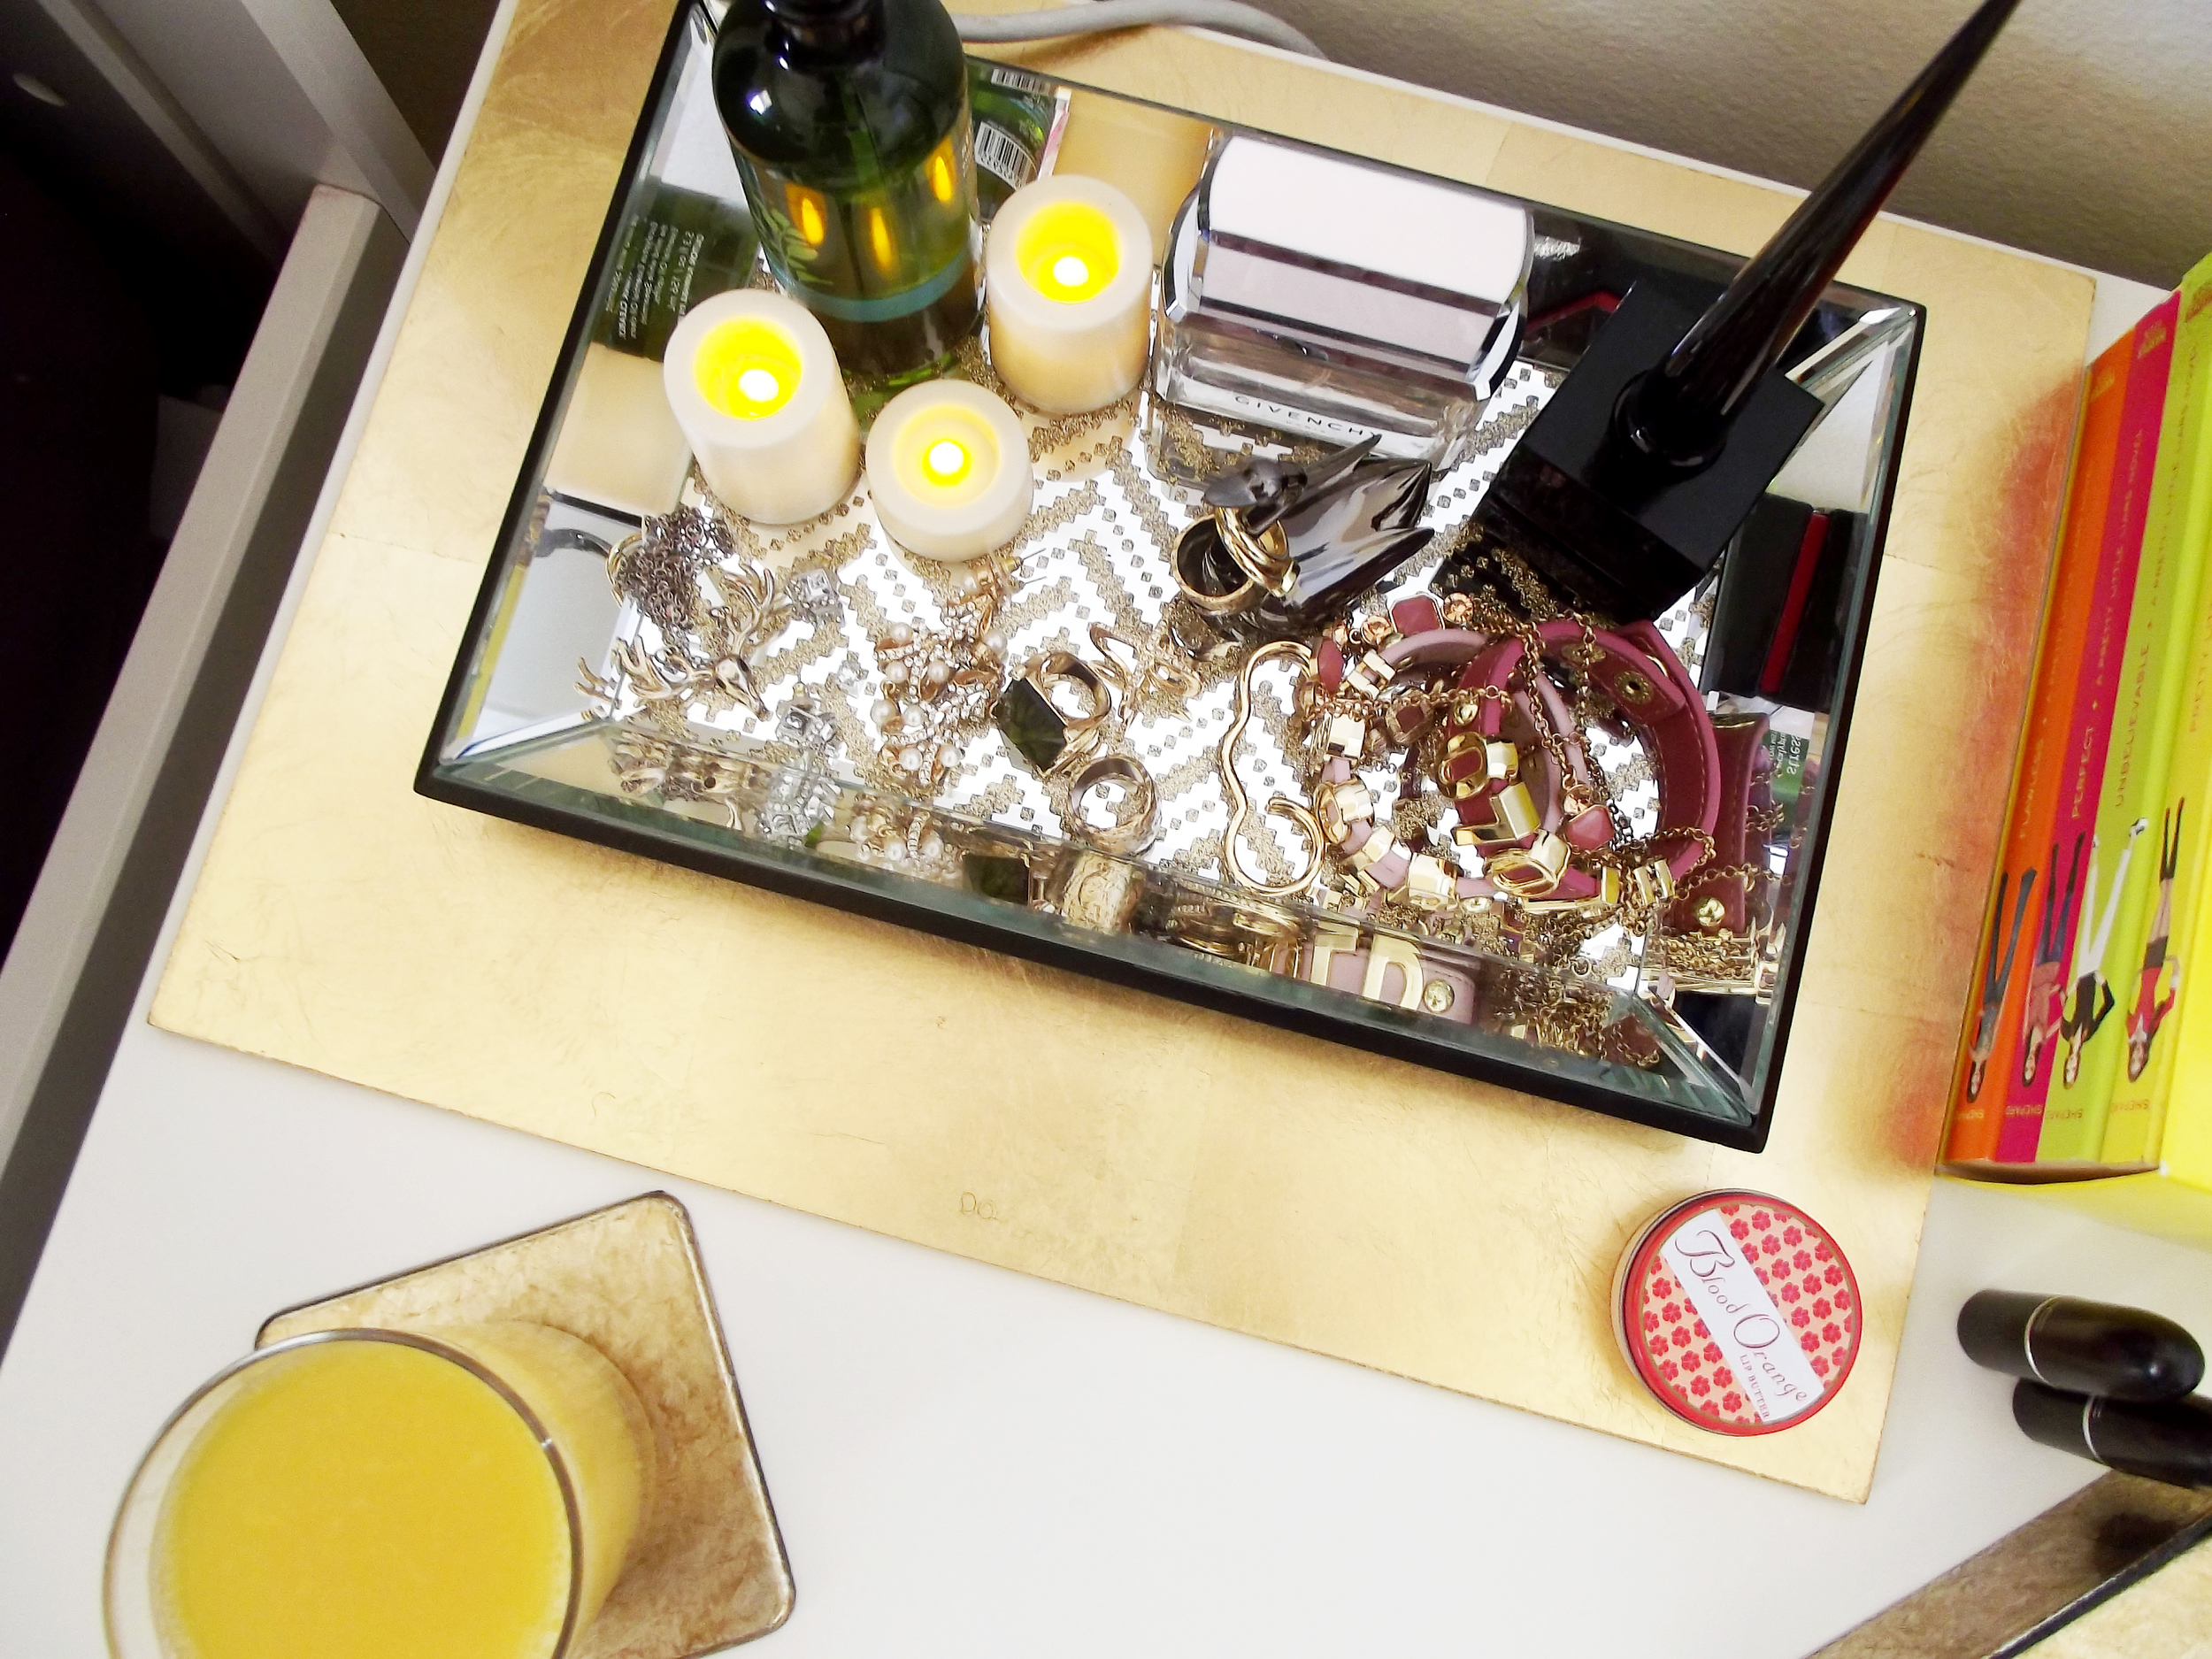 Before I added this chevron tray to the mix, my jewelry was just lying across the hatch of my desk which was probably the worst place for it. I found this mirrored chevron tray ($14.99 regular discounted price) and had to get it! I also added a few flameless candles ($6.00, yellow-tag) and placed the tray on this gold fiberboard placemat ($2.00, yellow-tag).